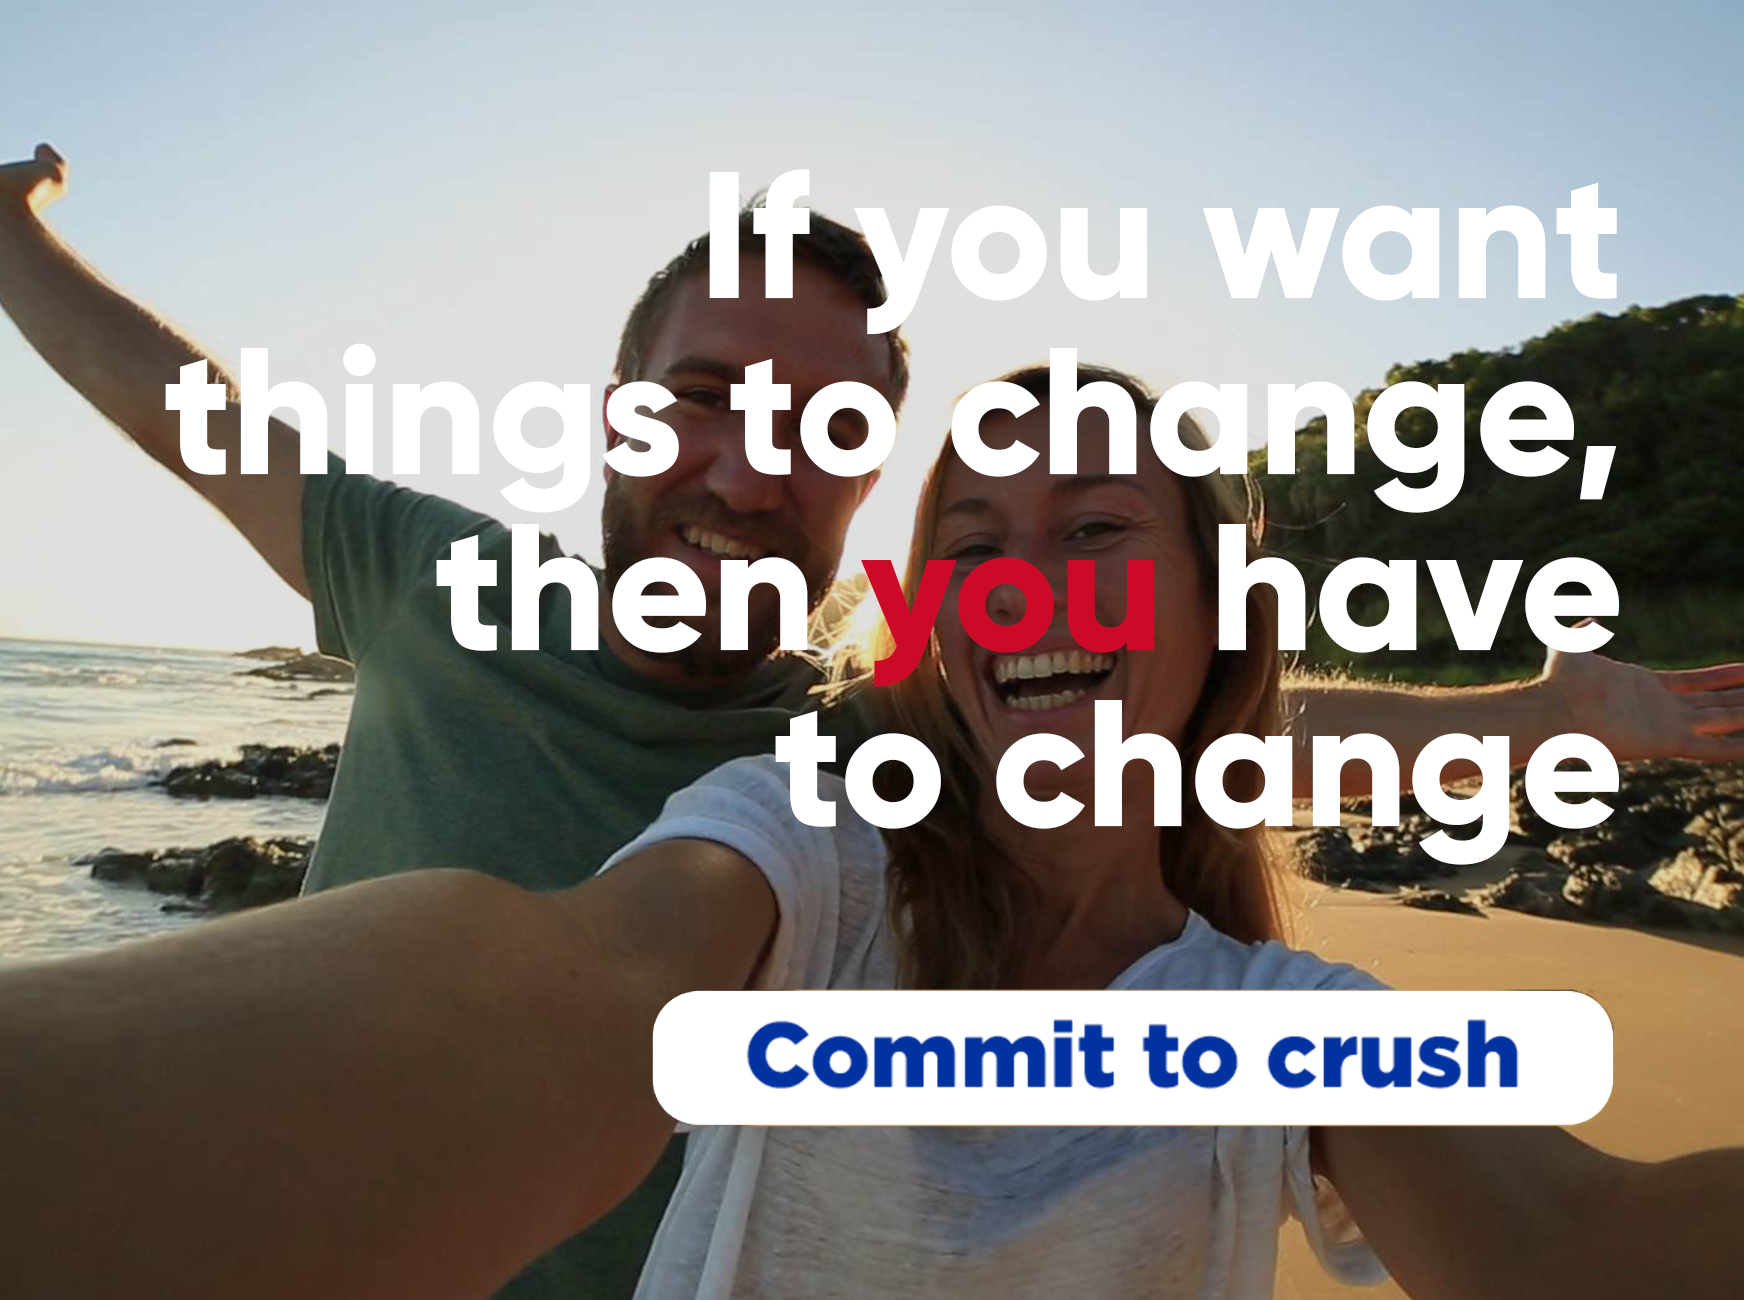 Commit to the Great Aussie Credit Crush and start paying down your debt, become debt free